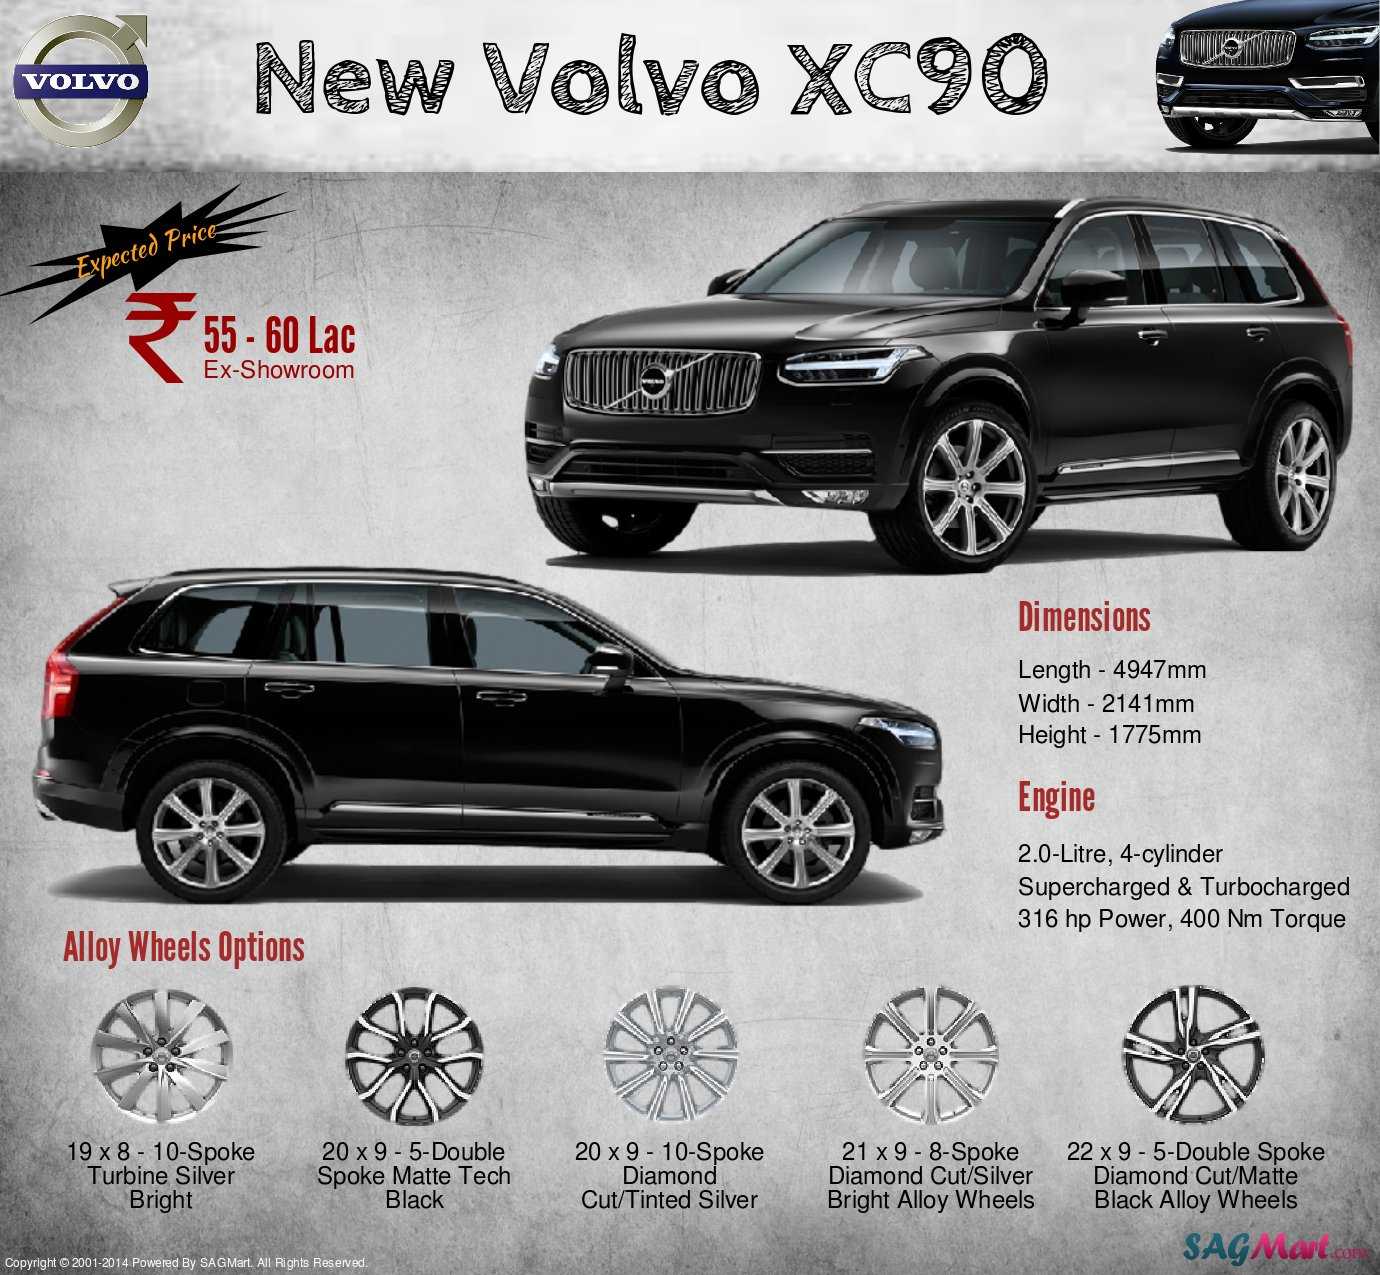 All New Volvo Xc90 Specifications Features And Price